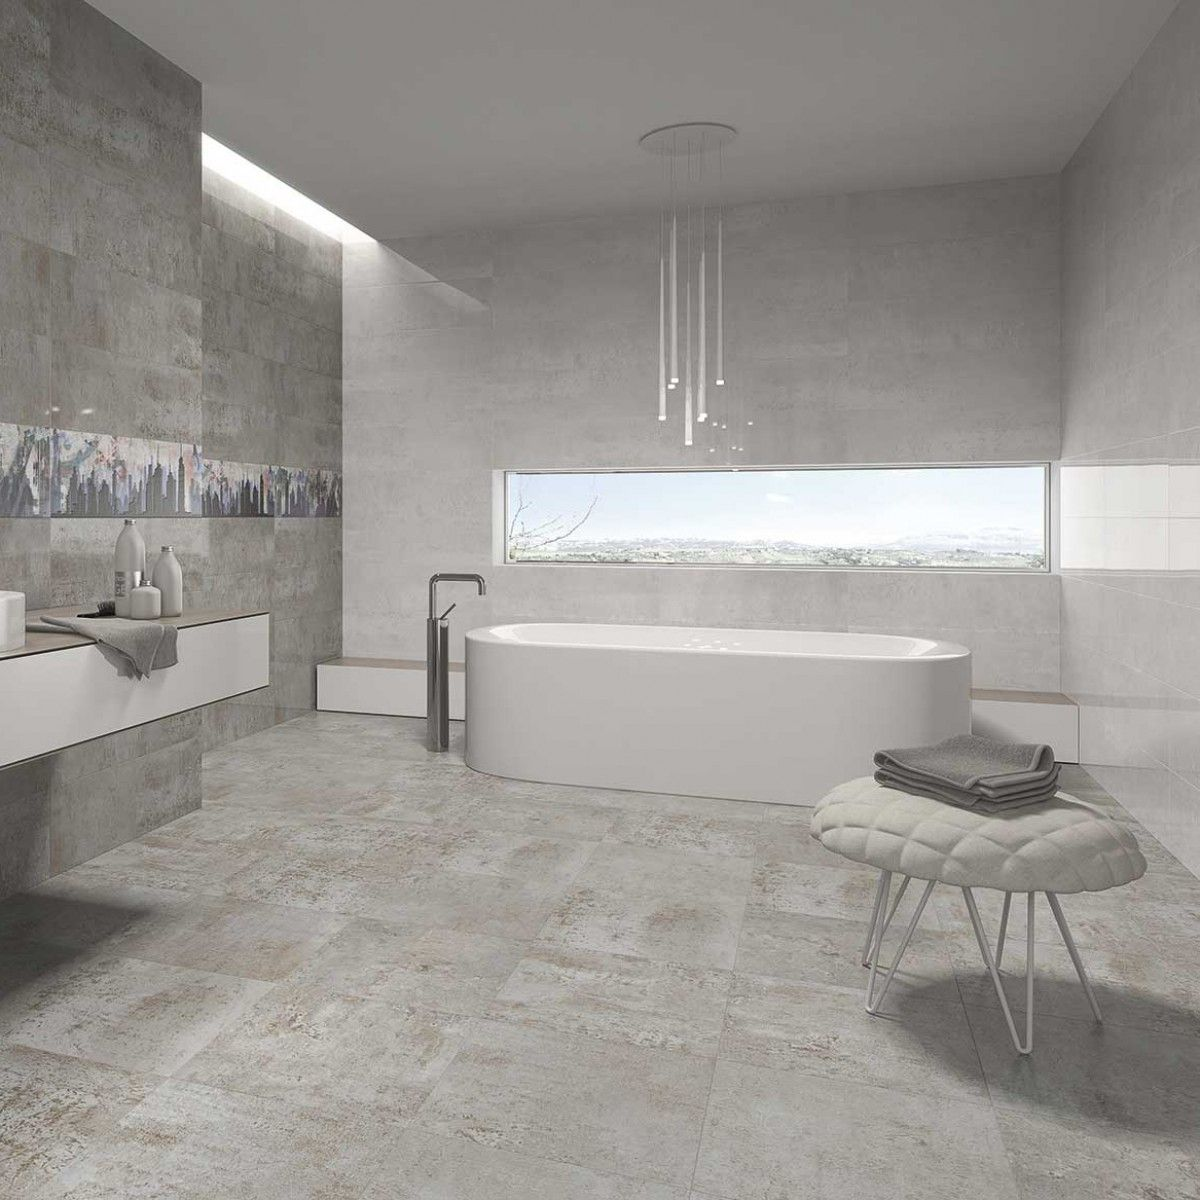 Crown Tiles 85x25 Fusion Blanco Wall Tile Crown Tiles Bathroom Construction Tile Bathroom Large Bathrooms